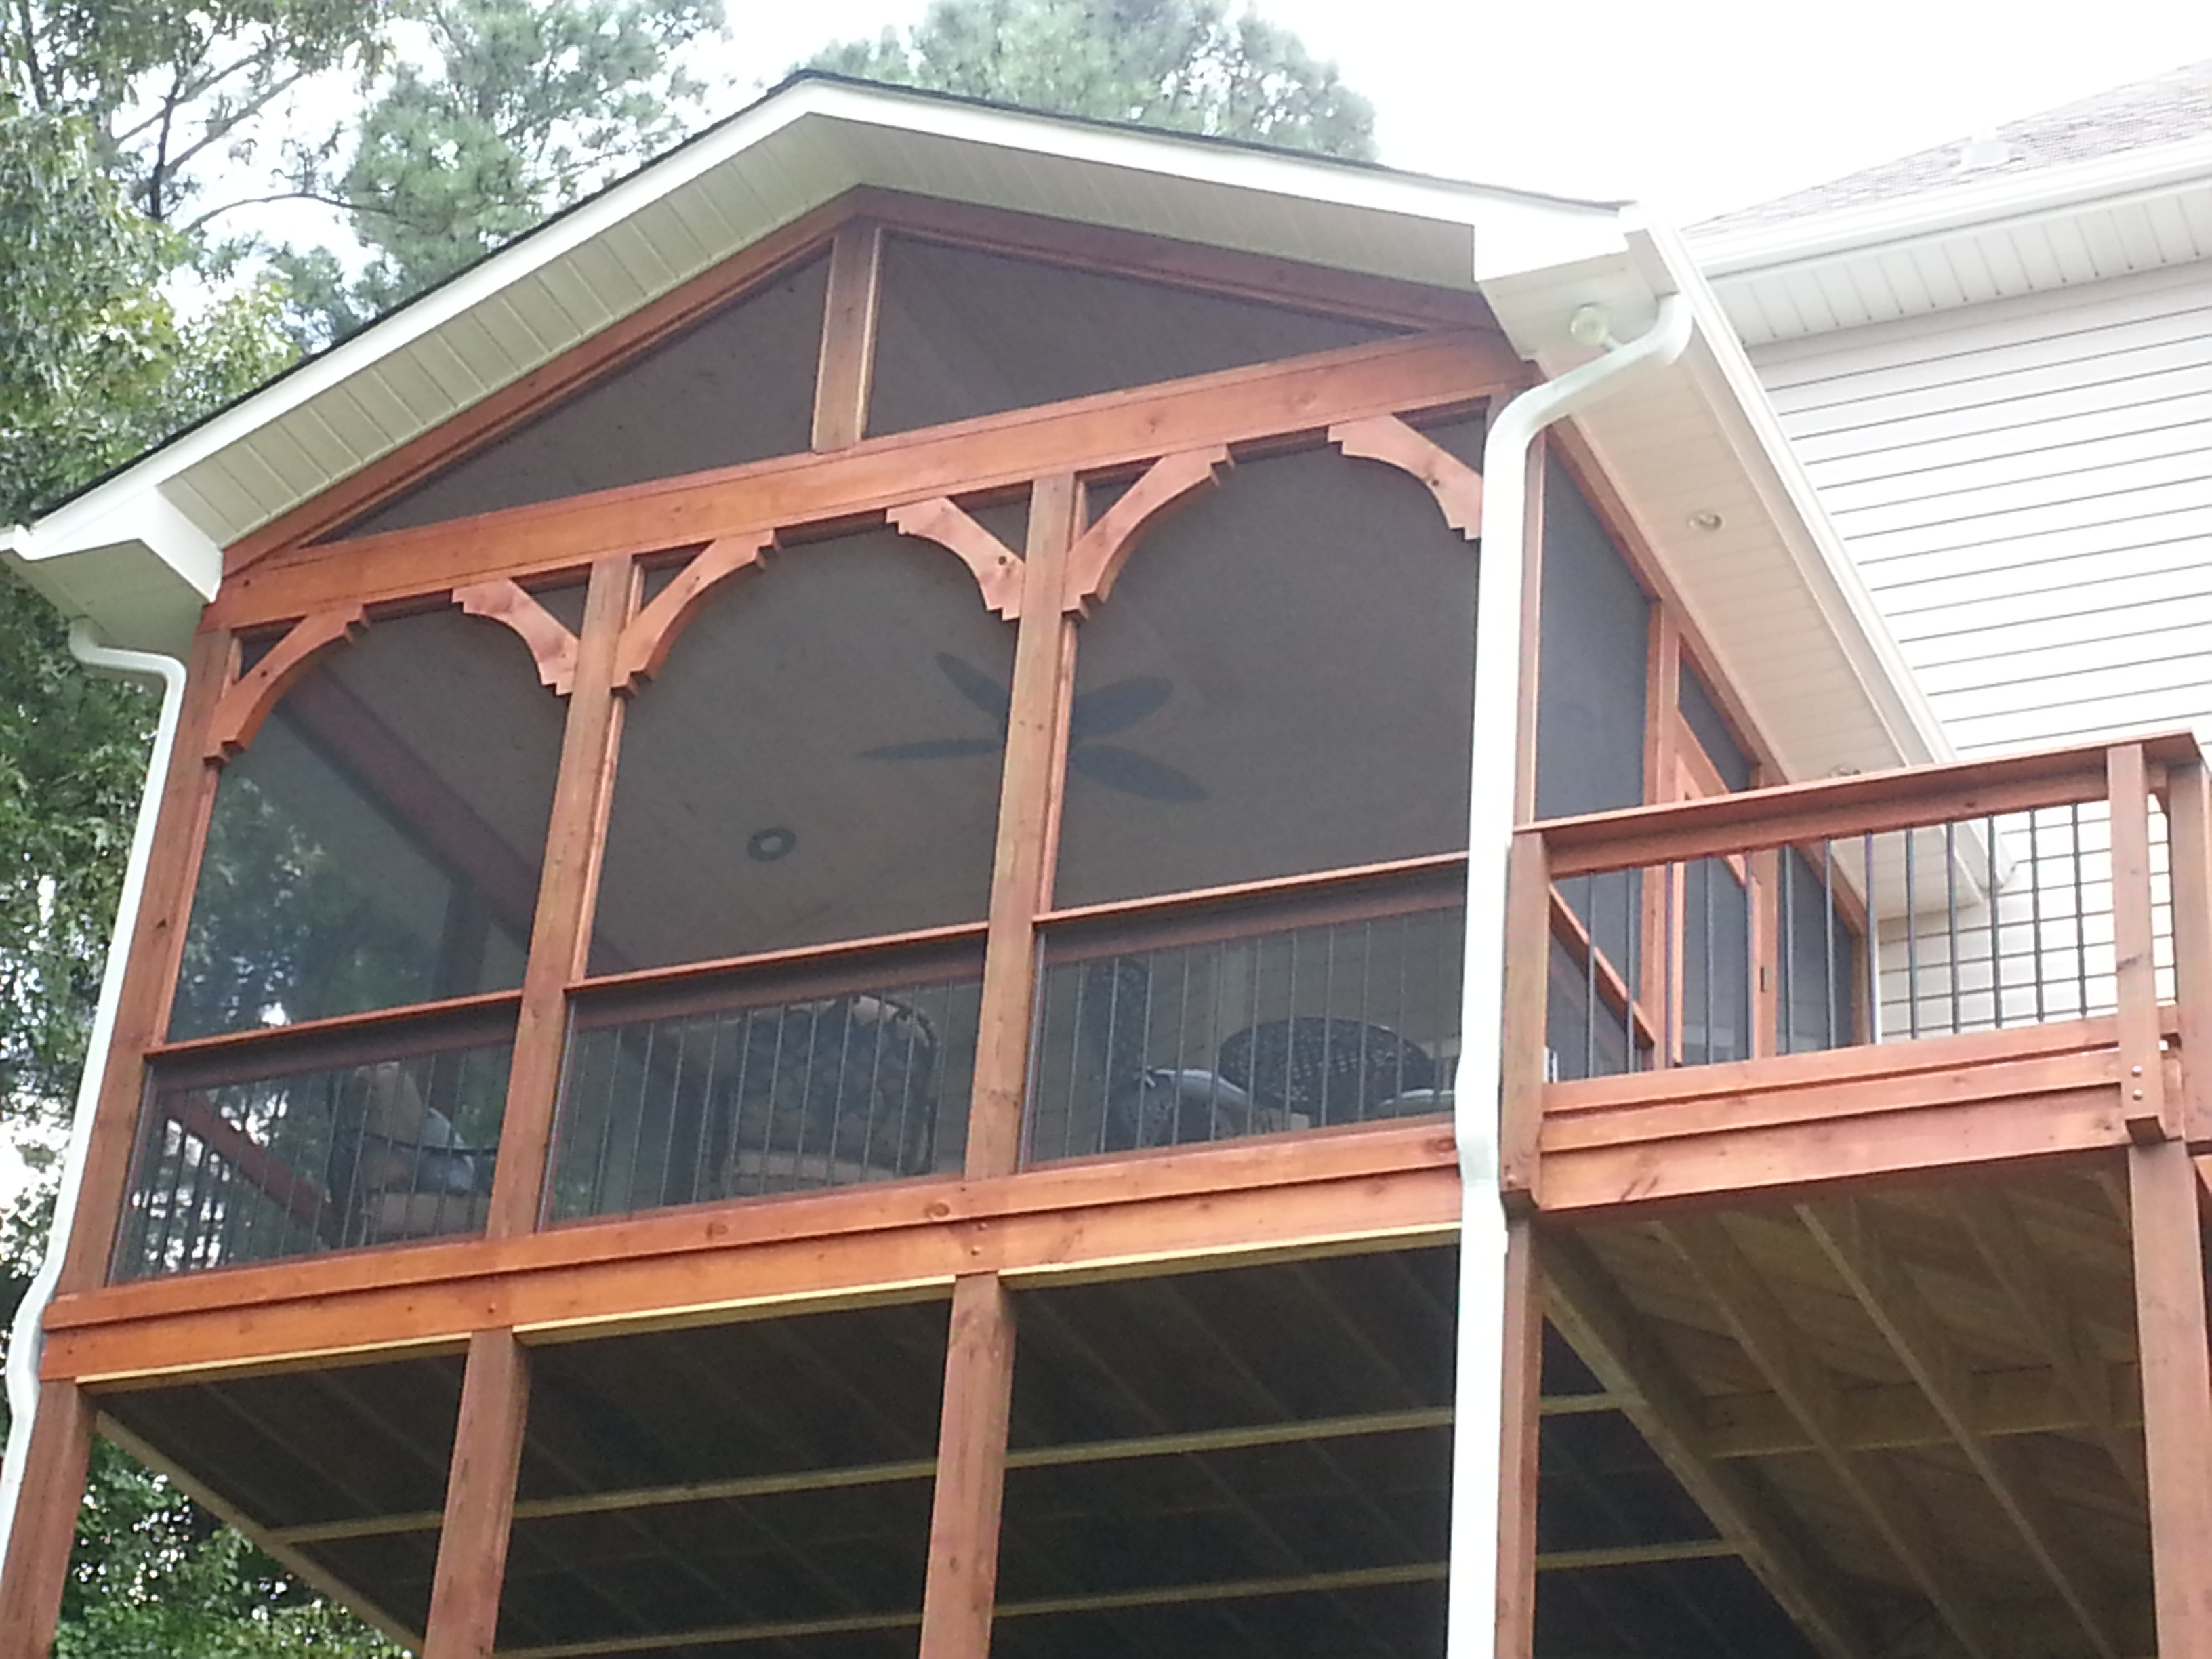 anderson builder custom porch five flooring post with builders pictures rails and hip roofed sided in screen cedar projects fredericksburg breeze wall into ez winds eagle northern t doors mahogany decks com deckworks by g va screened deck leading